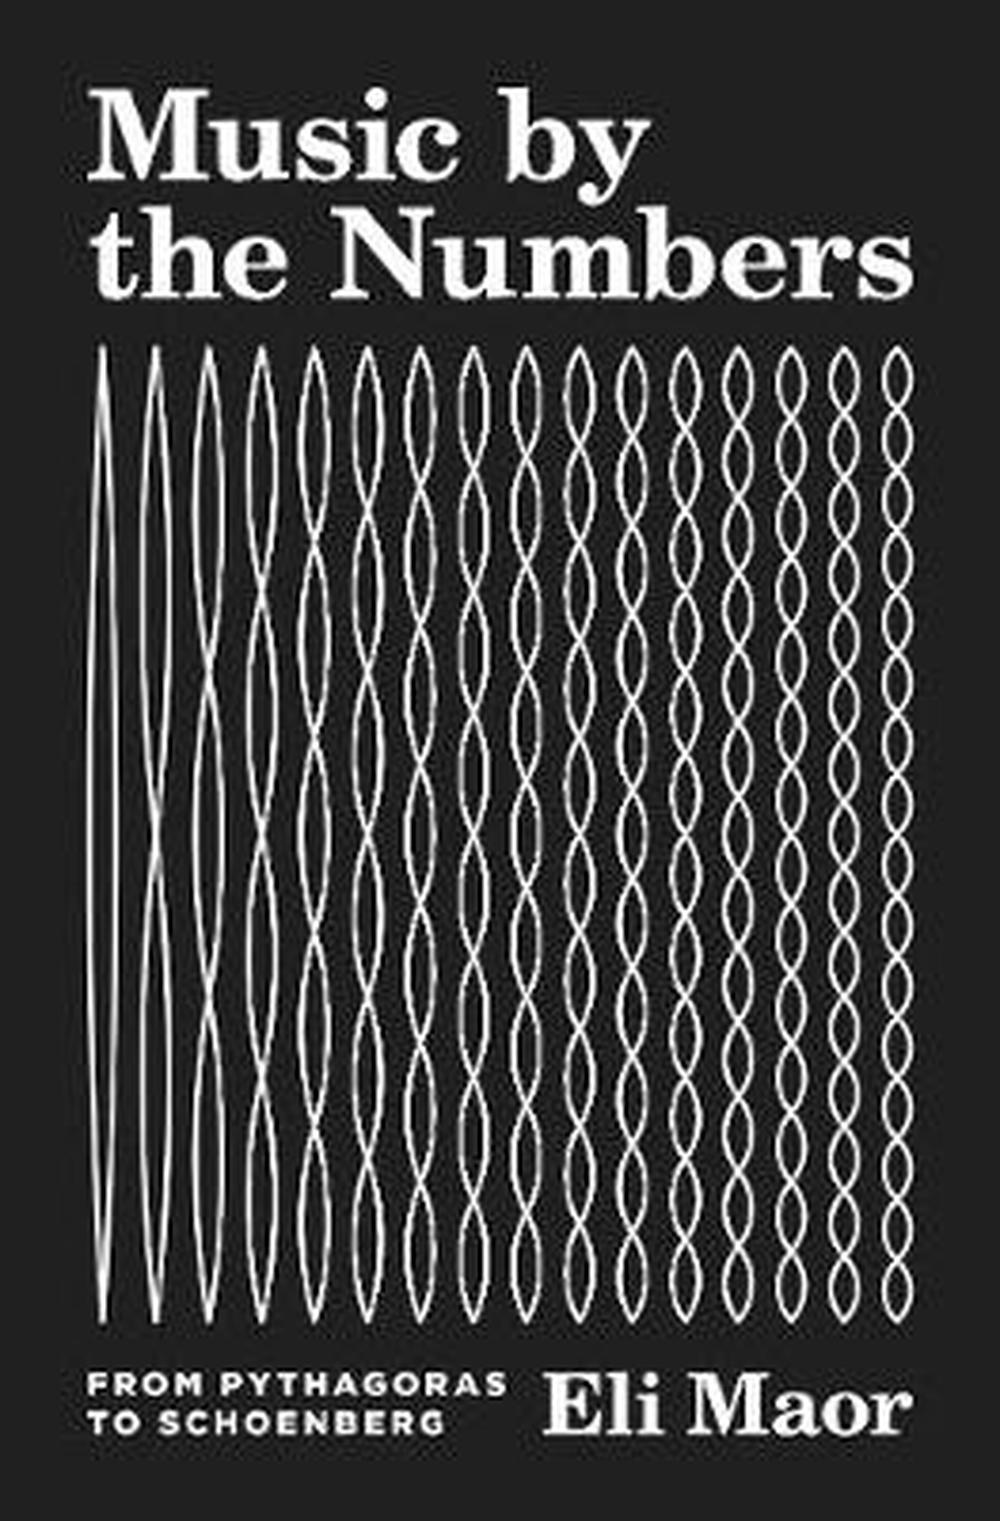 Music by the NumbersFrom Pythagoras to Schoenberg